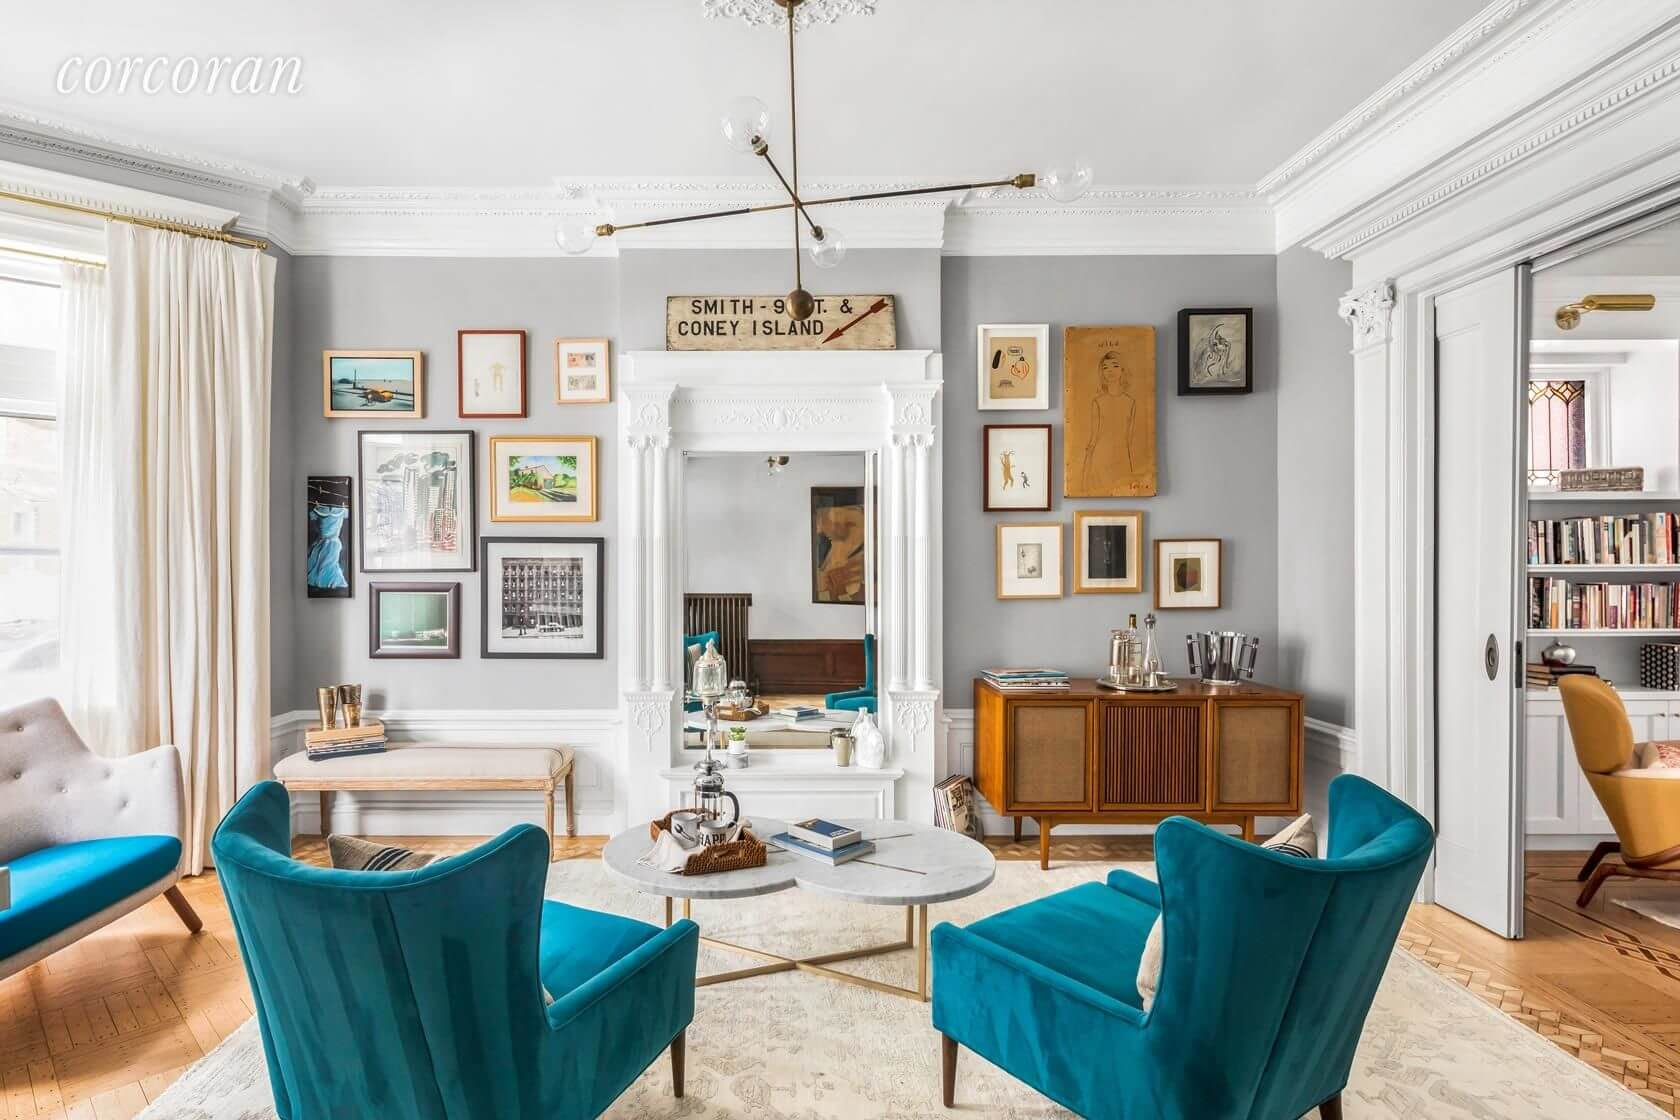 Emily Blunt and John Krasinski List Brooklyn Home for $8 Million